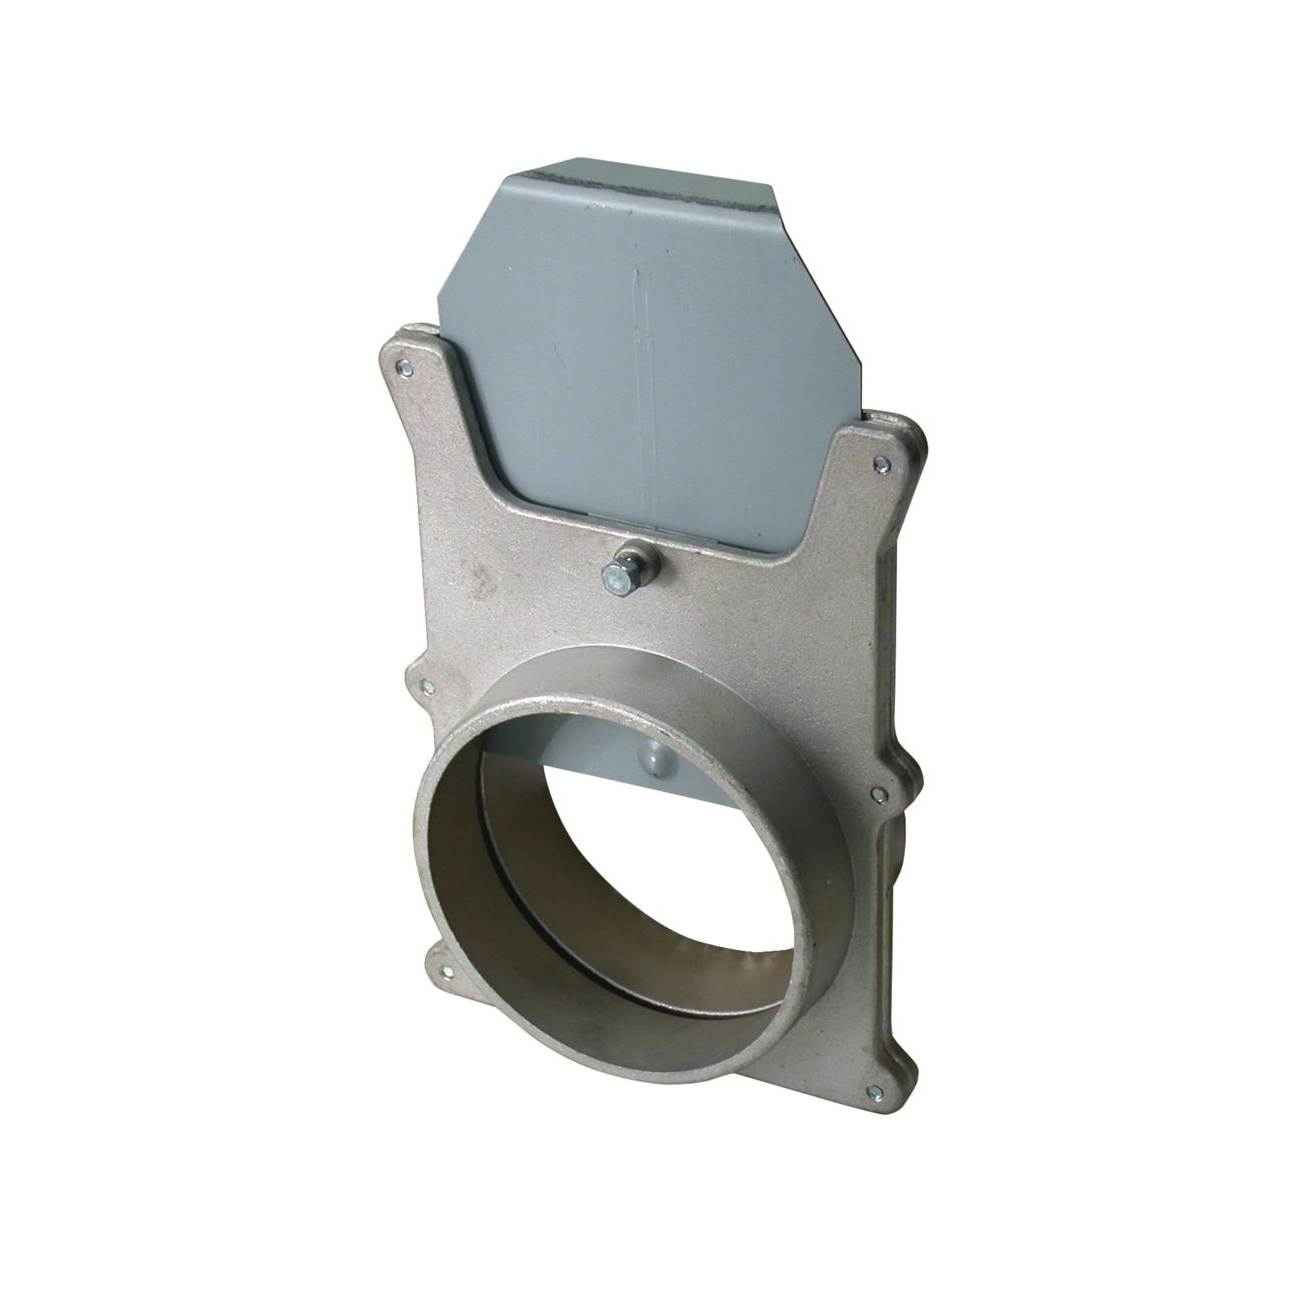 Picture of FLUIDMASTER Click Seal B1T12CS Toilet Connector, 3/8 in Inlet, Compression Inlet, 7/8 in Outlet, Ballcock Outlet